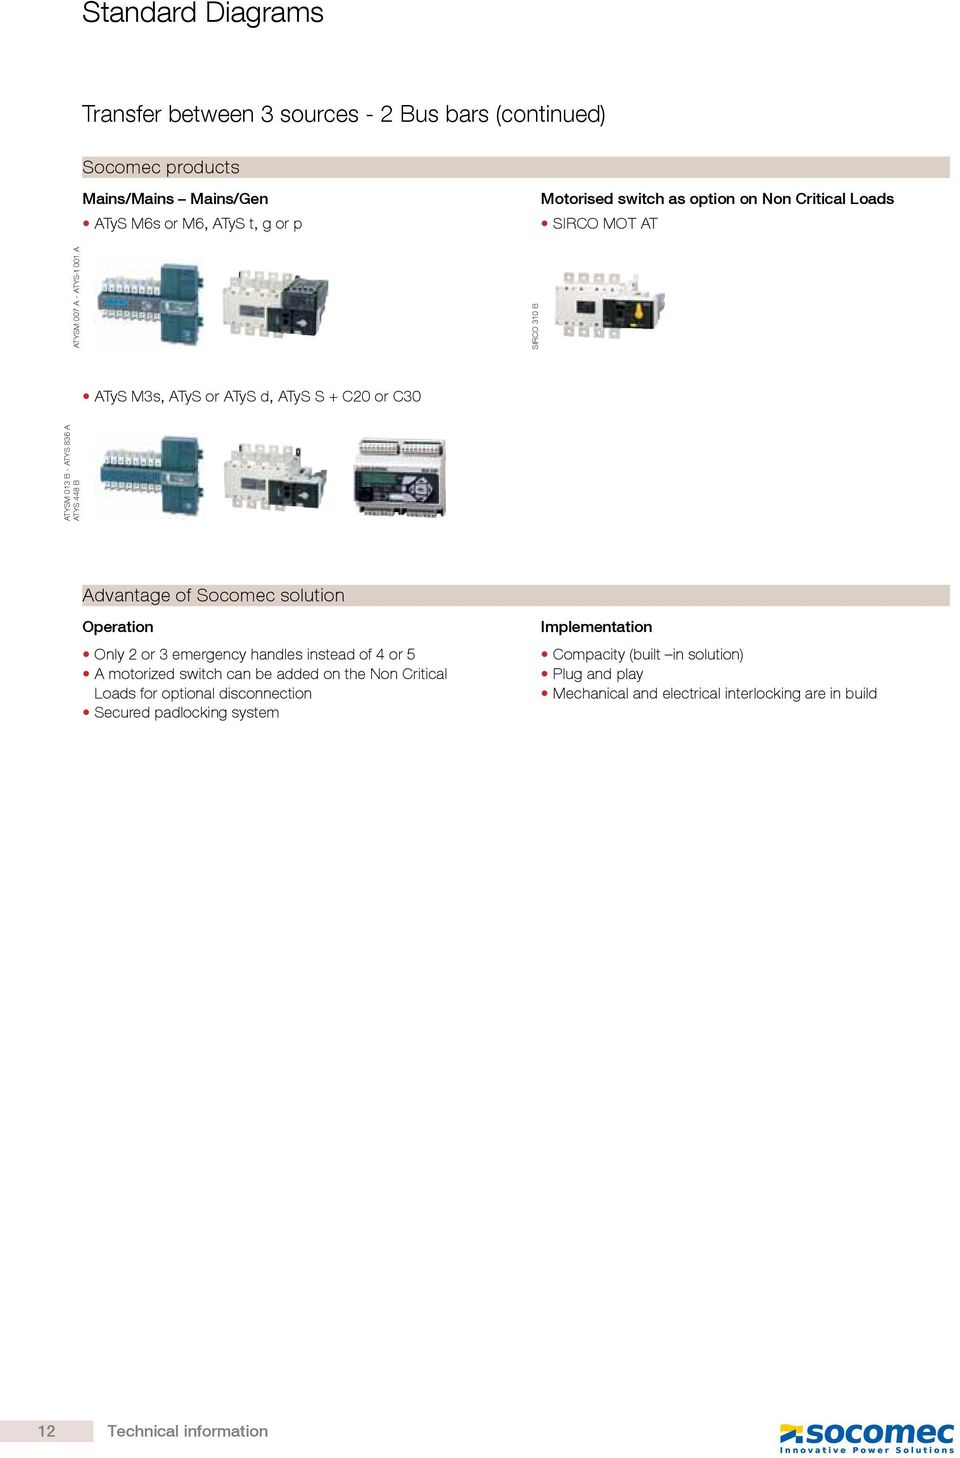 Phenomenal Technical Information Typical Automatic Transfer Switch Diagrams Pdf Wiring Database Pengheclesi4X4Andersnl